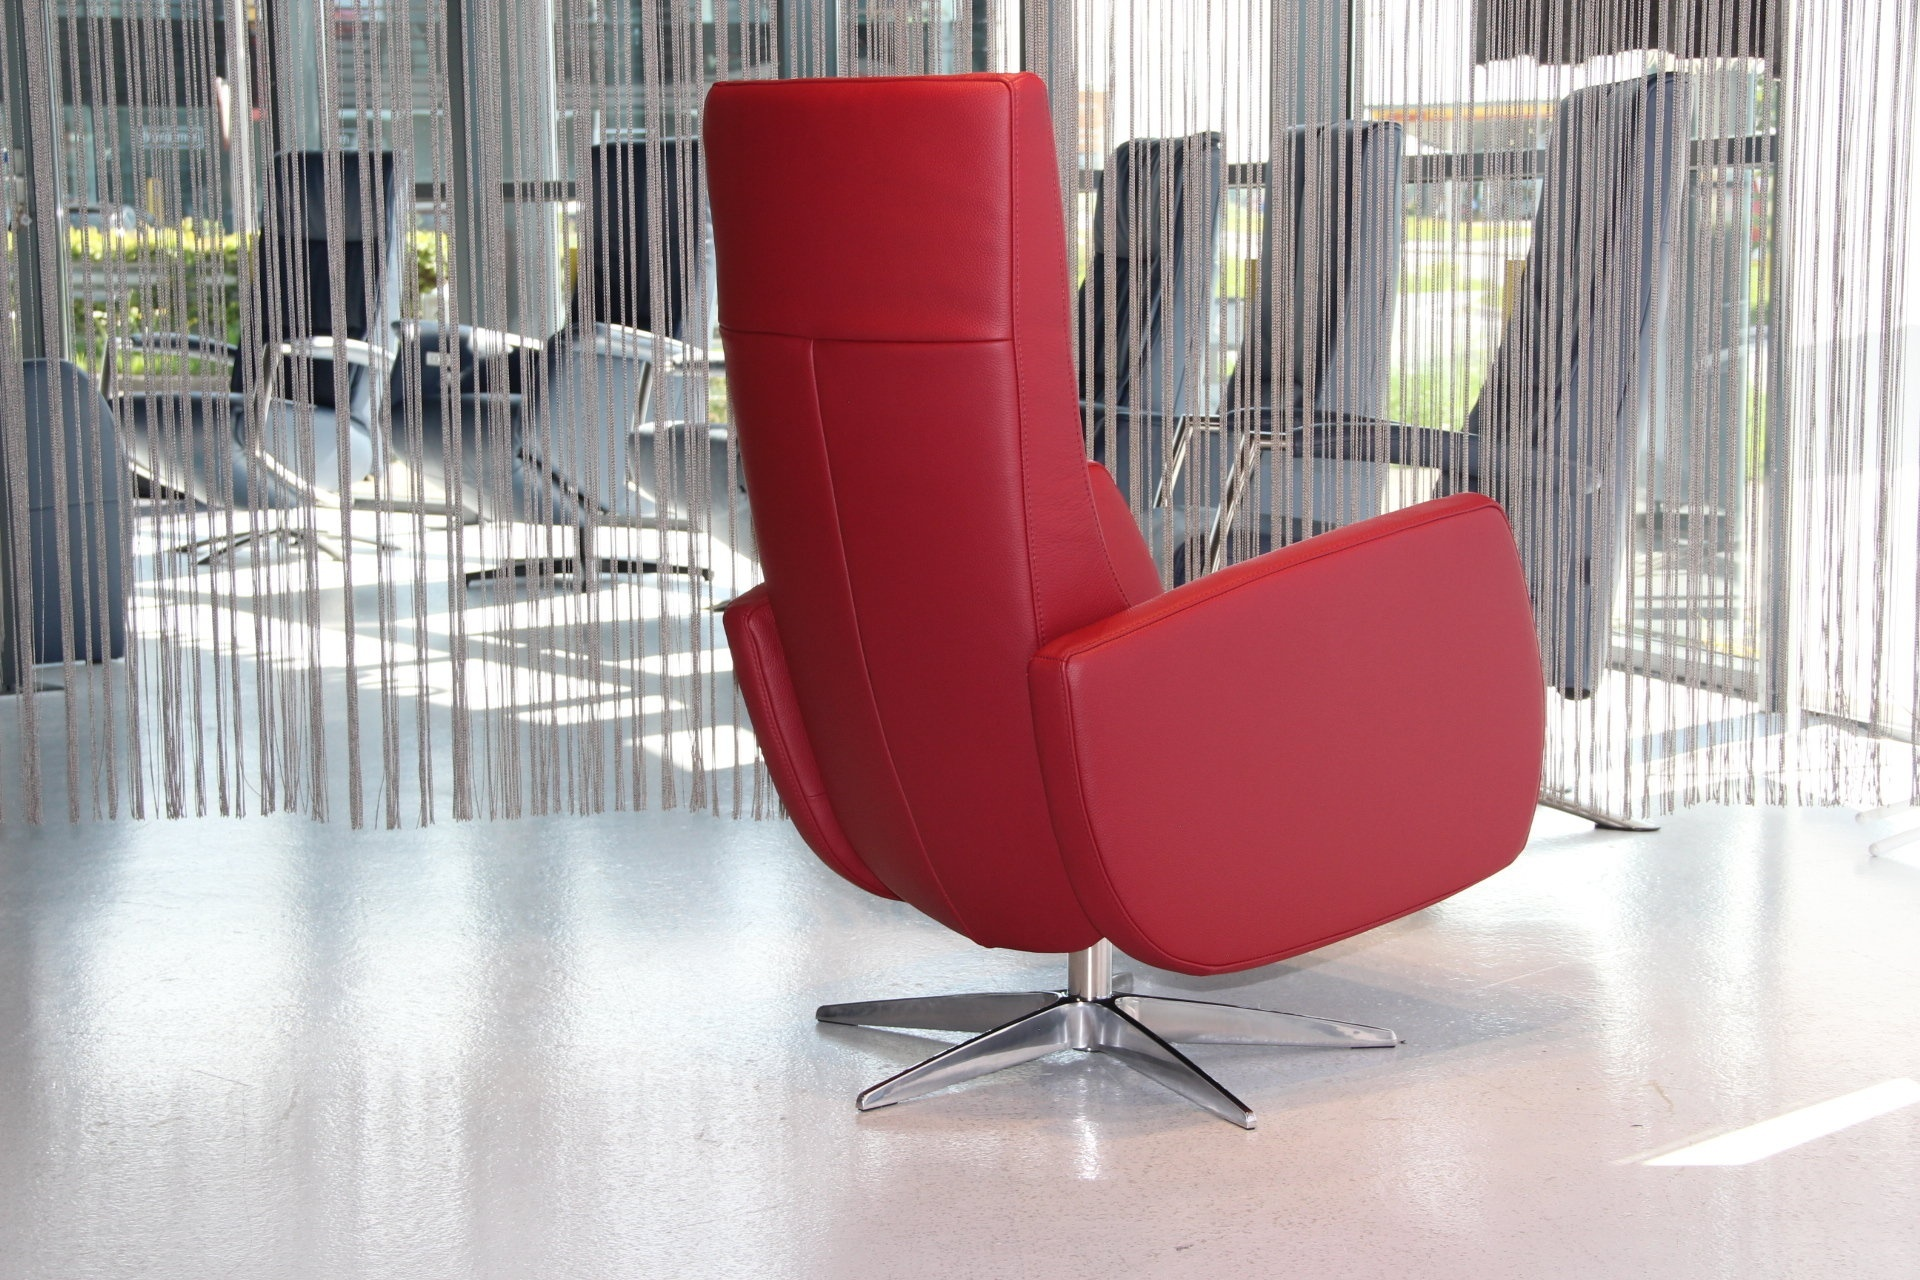 Relax Fauteuil Rood.Relaxfauteuil Manueel Draai Gealux Rundleder Rood